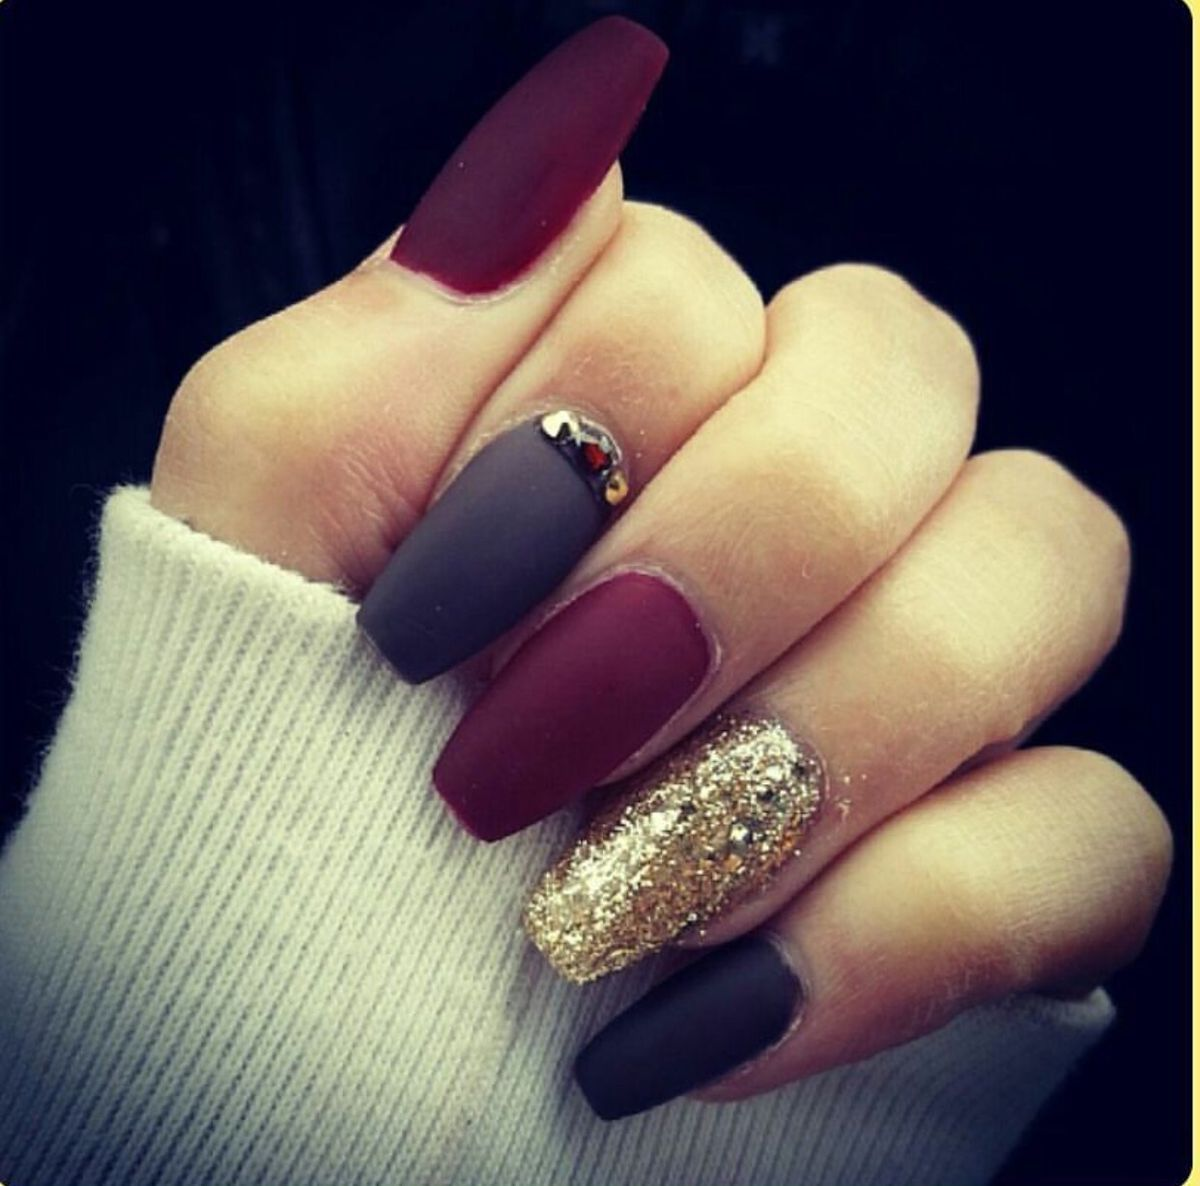 Pin by Hallie Brown on Nails | Pinterest | Stiletto nail art ...